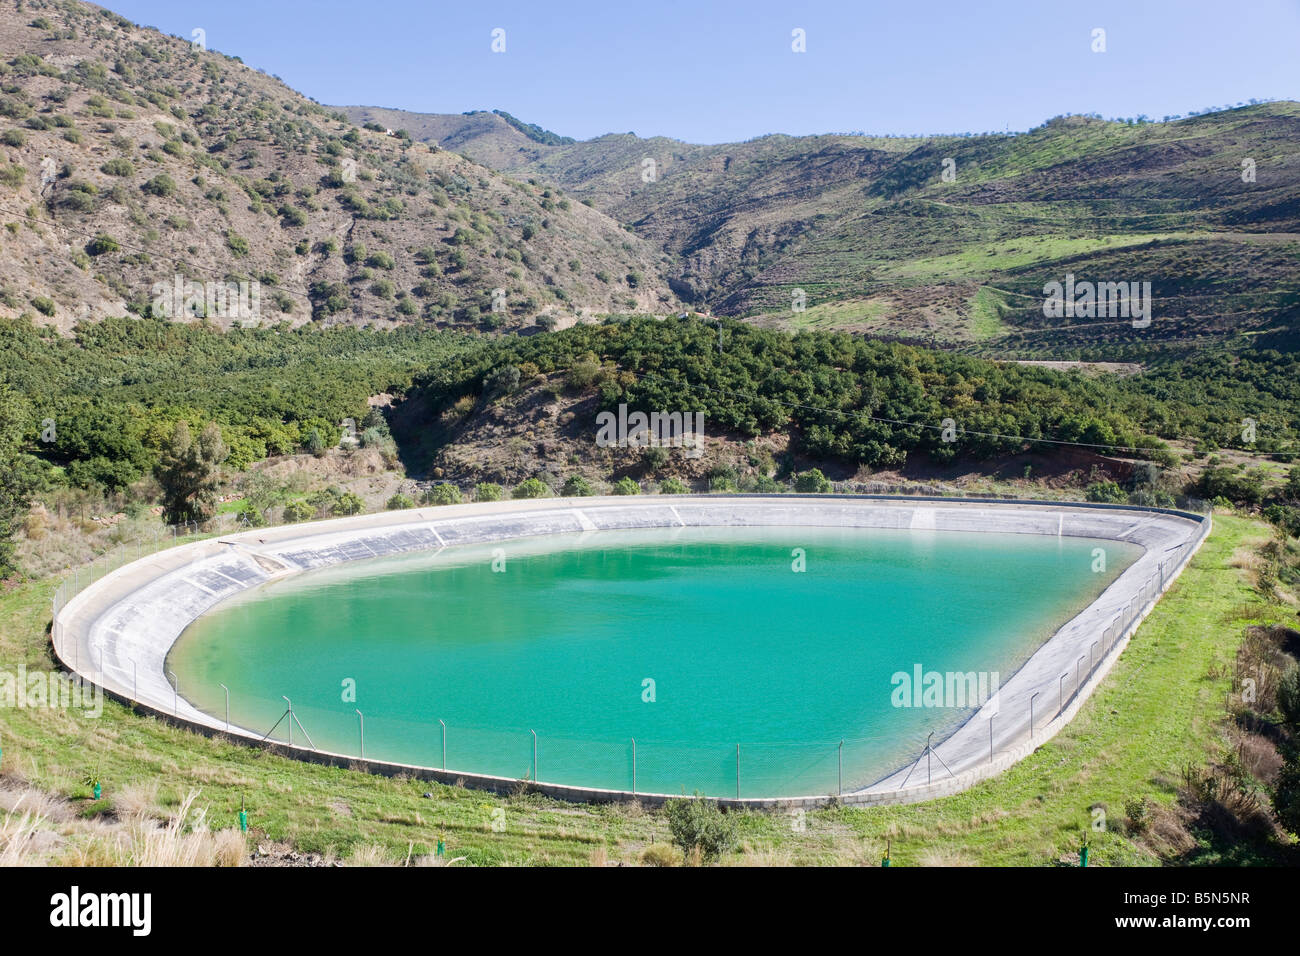 Farm reservoir near Casabermeja Malaga Province Spain - Stock Image